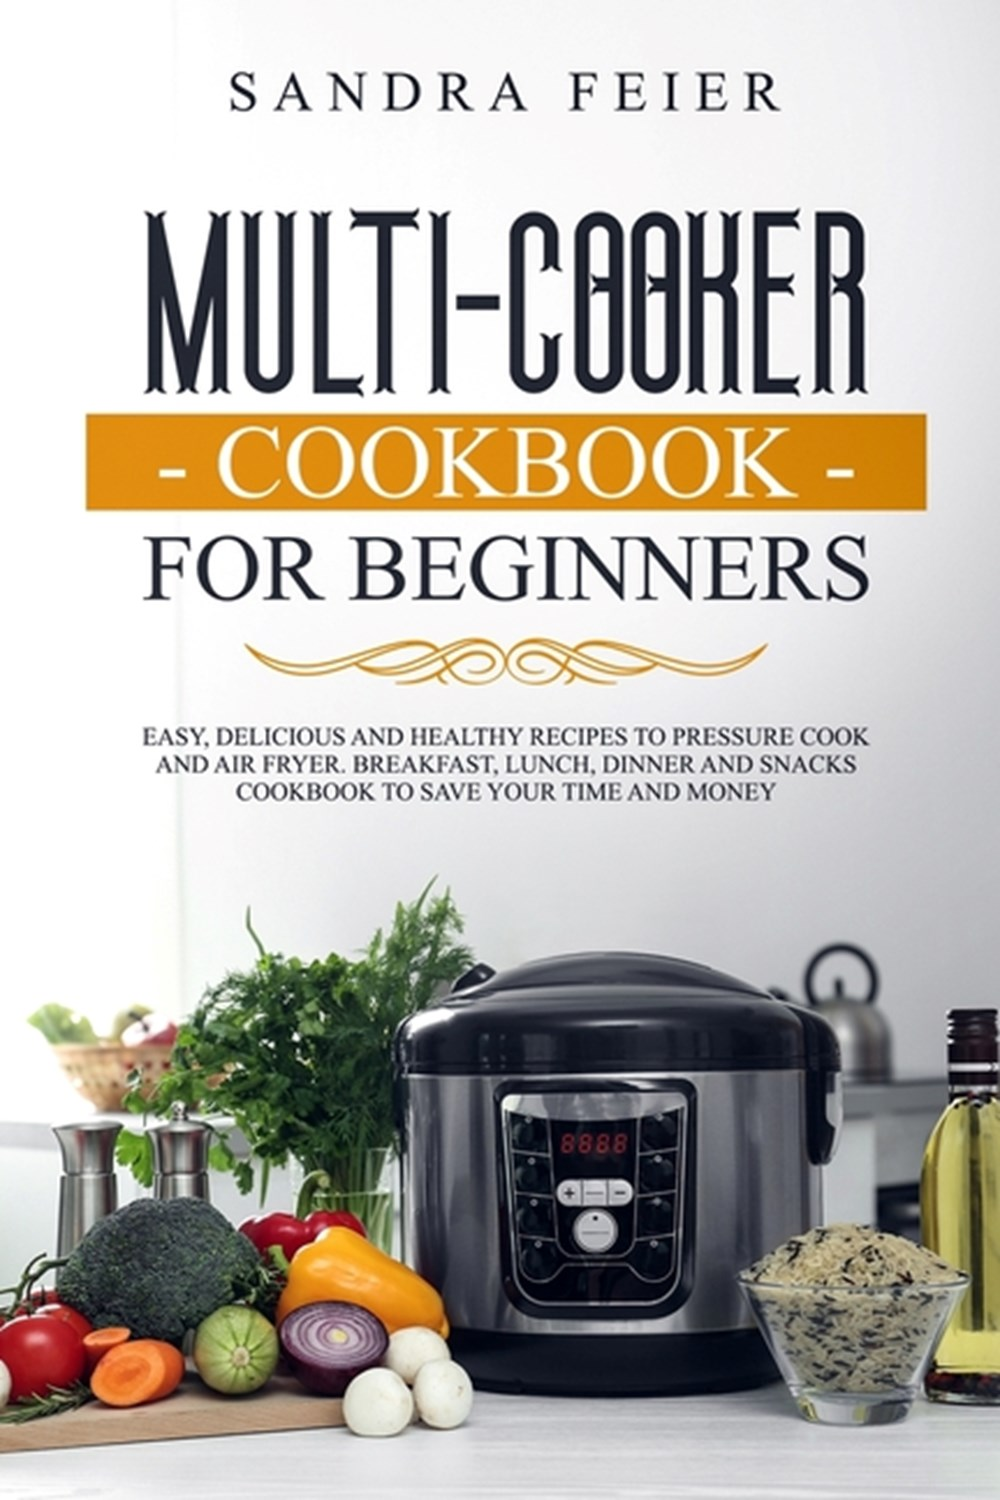 Multi-Cooker Cookbook for Beginners Easy, Delicious and Healthy Recipes to Pressure Cook and Air Fry